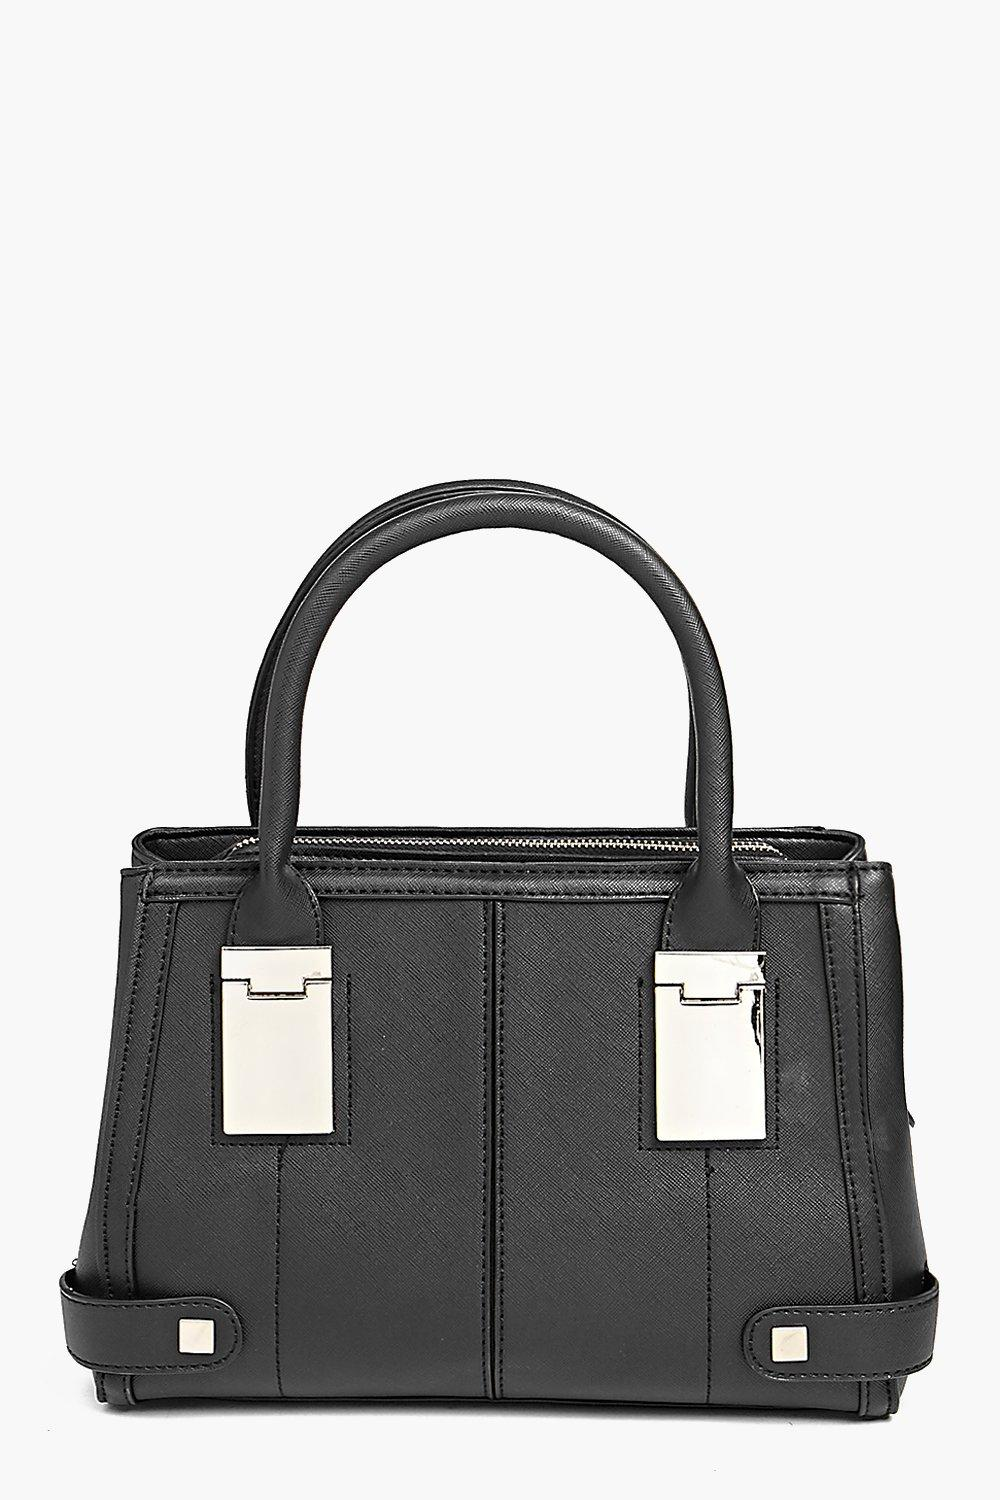 Metal Detail Day Bag black